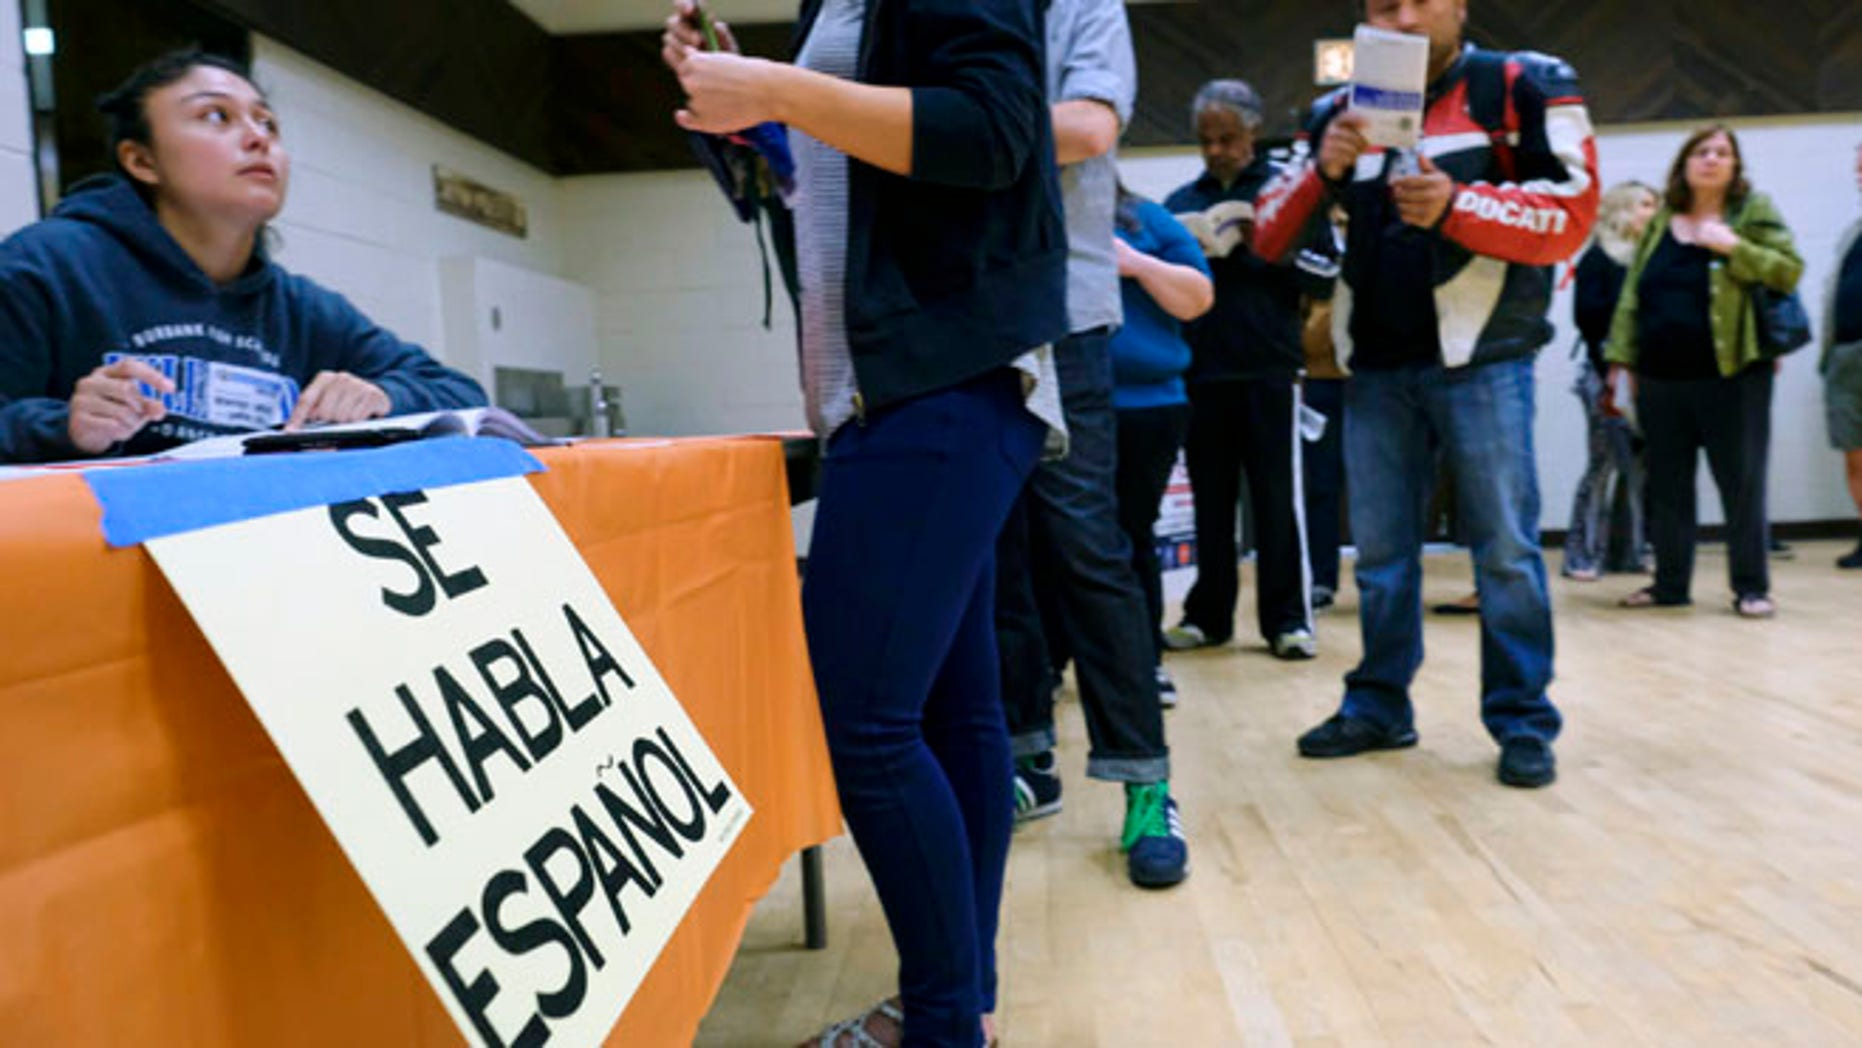 """A sign that reads """"Spanish is Spoken Here"""" hangs as voters check in at the North Hollywood Amelia Earhart Regional Library polling station in Los Angeles on Tuesday, Nov. 8, 2016. (AP Photo/Richard Vogel)"""